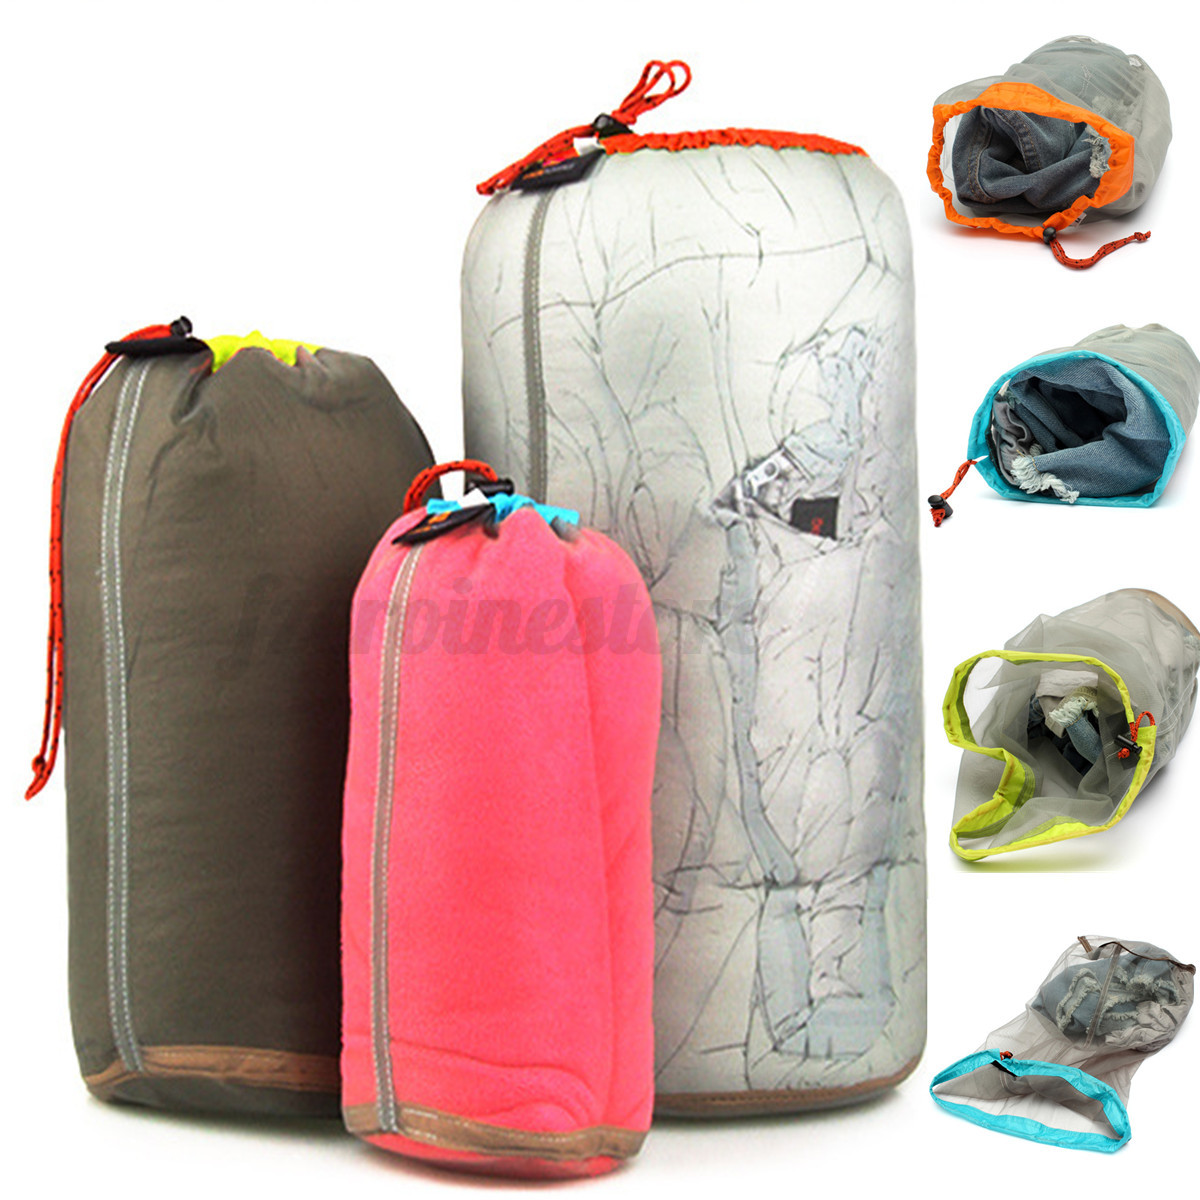 34e03a4ed057 Details about Outdoor Sports Travel Camping Ultralight Mesh Stuff  Drawstring Bag Sack Storage